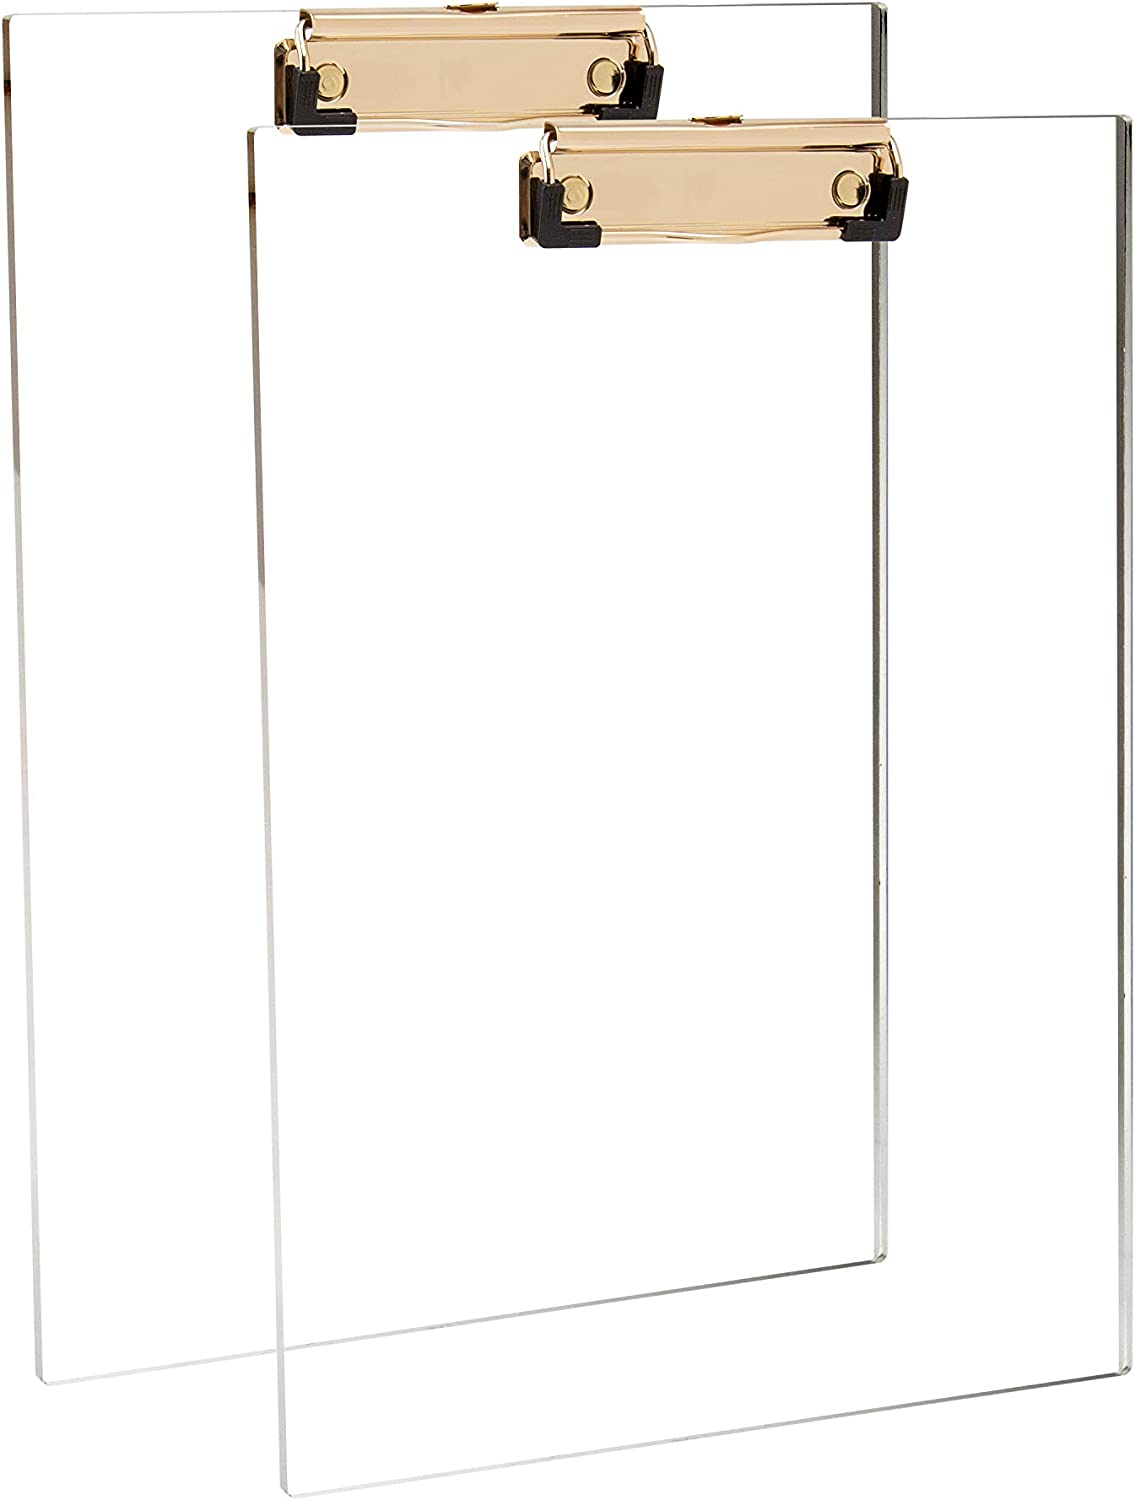 Clear Acrylic Clipboard with Gold Clip, Set 2-Pieces, Fits 9x12 inch - Letter Size Standard, Modern Design Desktop Stationery for Office, School and Home Supplies,Acrylic Office Supplies